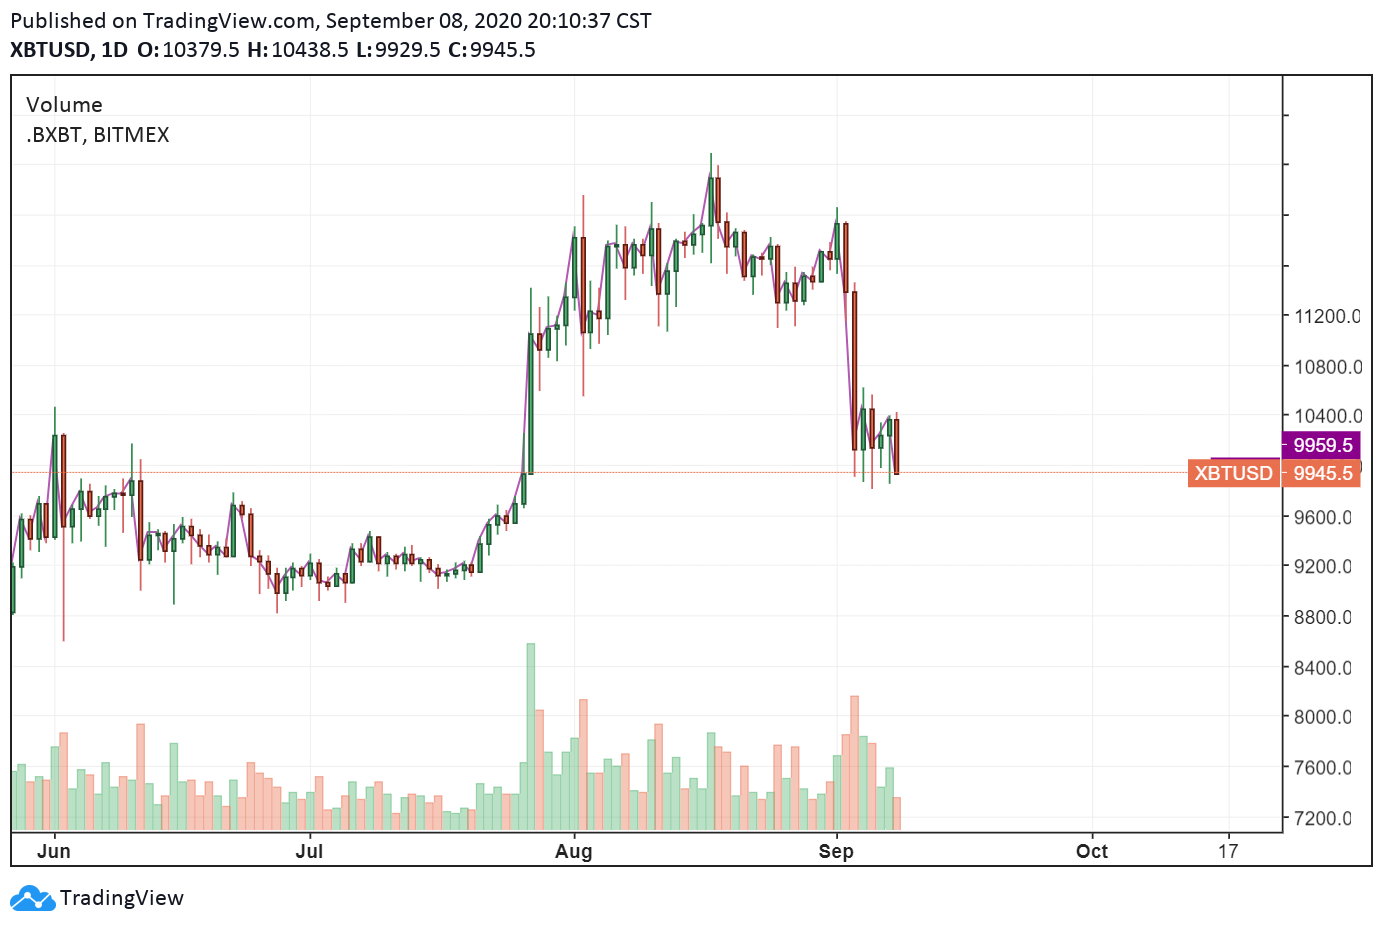 The daily chart of Bitcoin